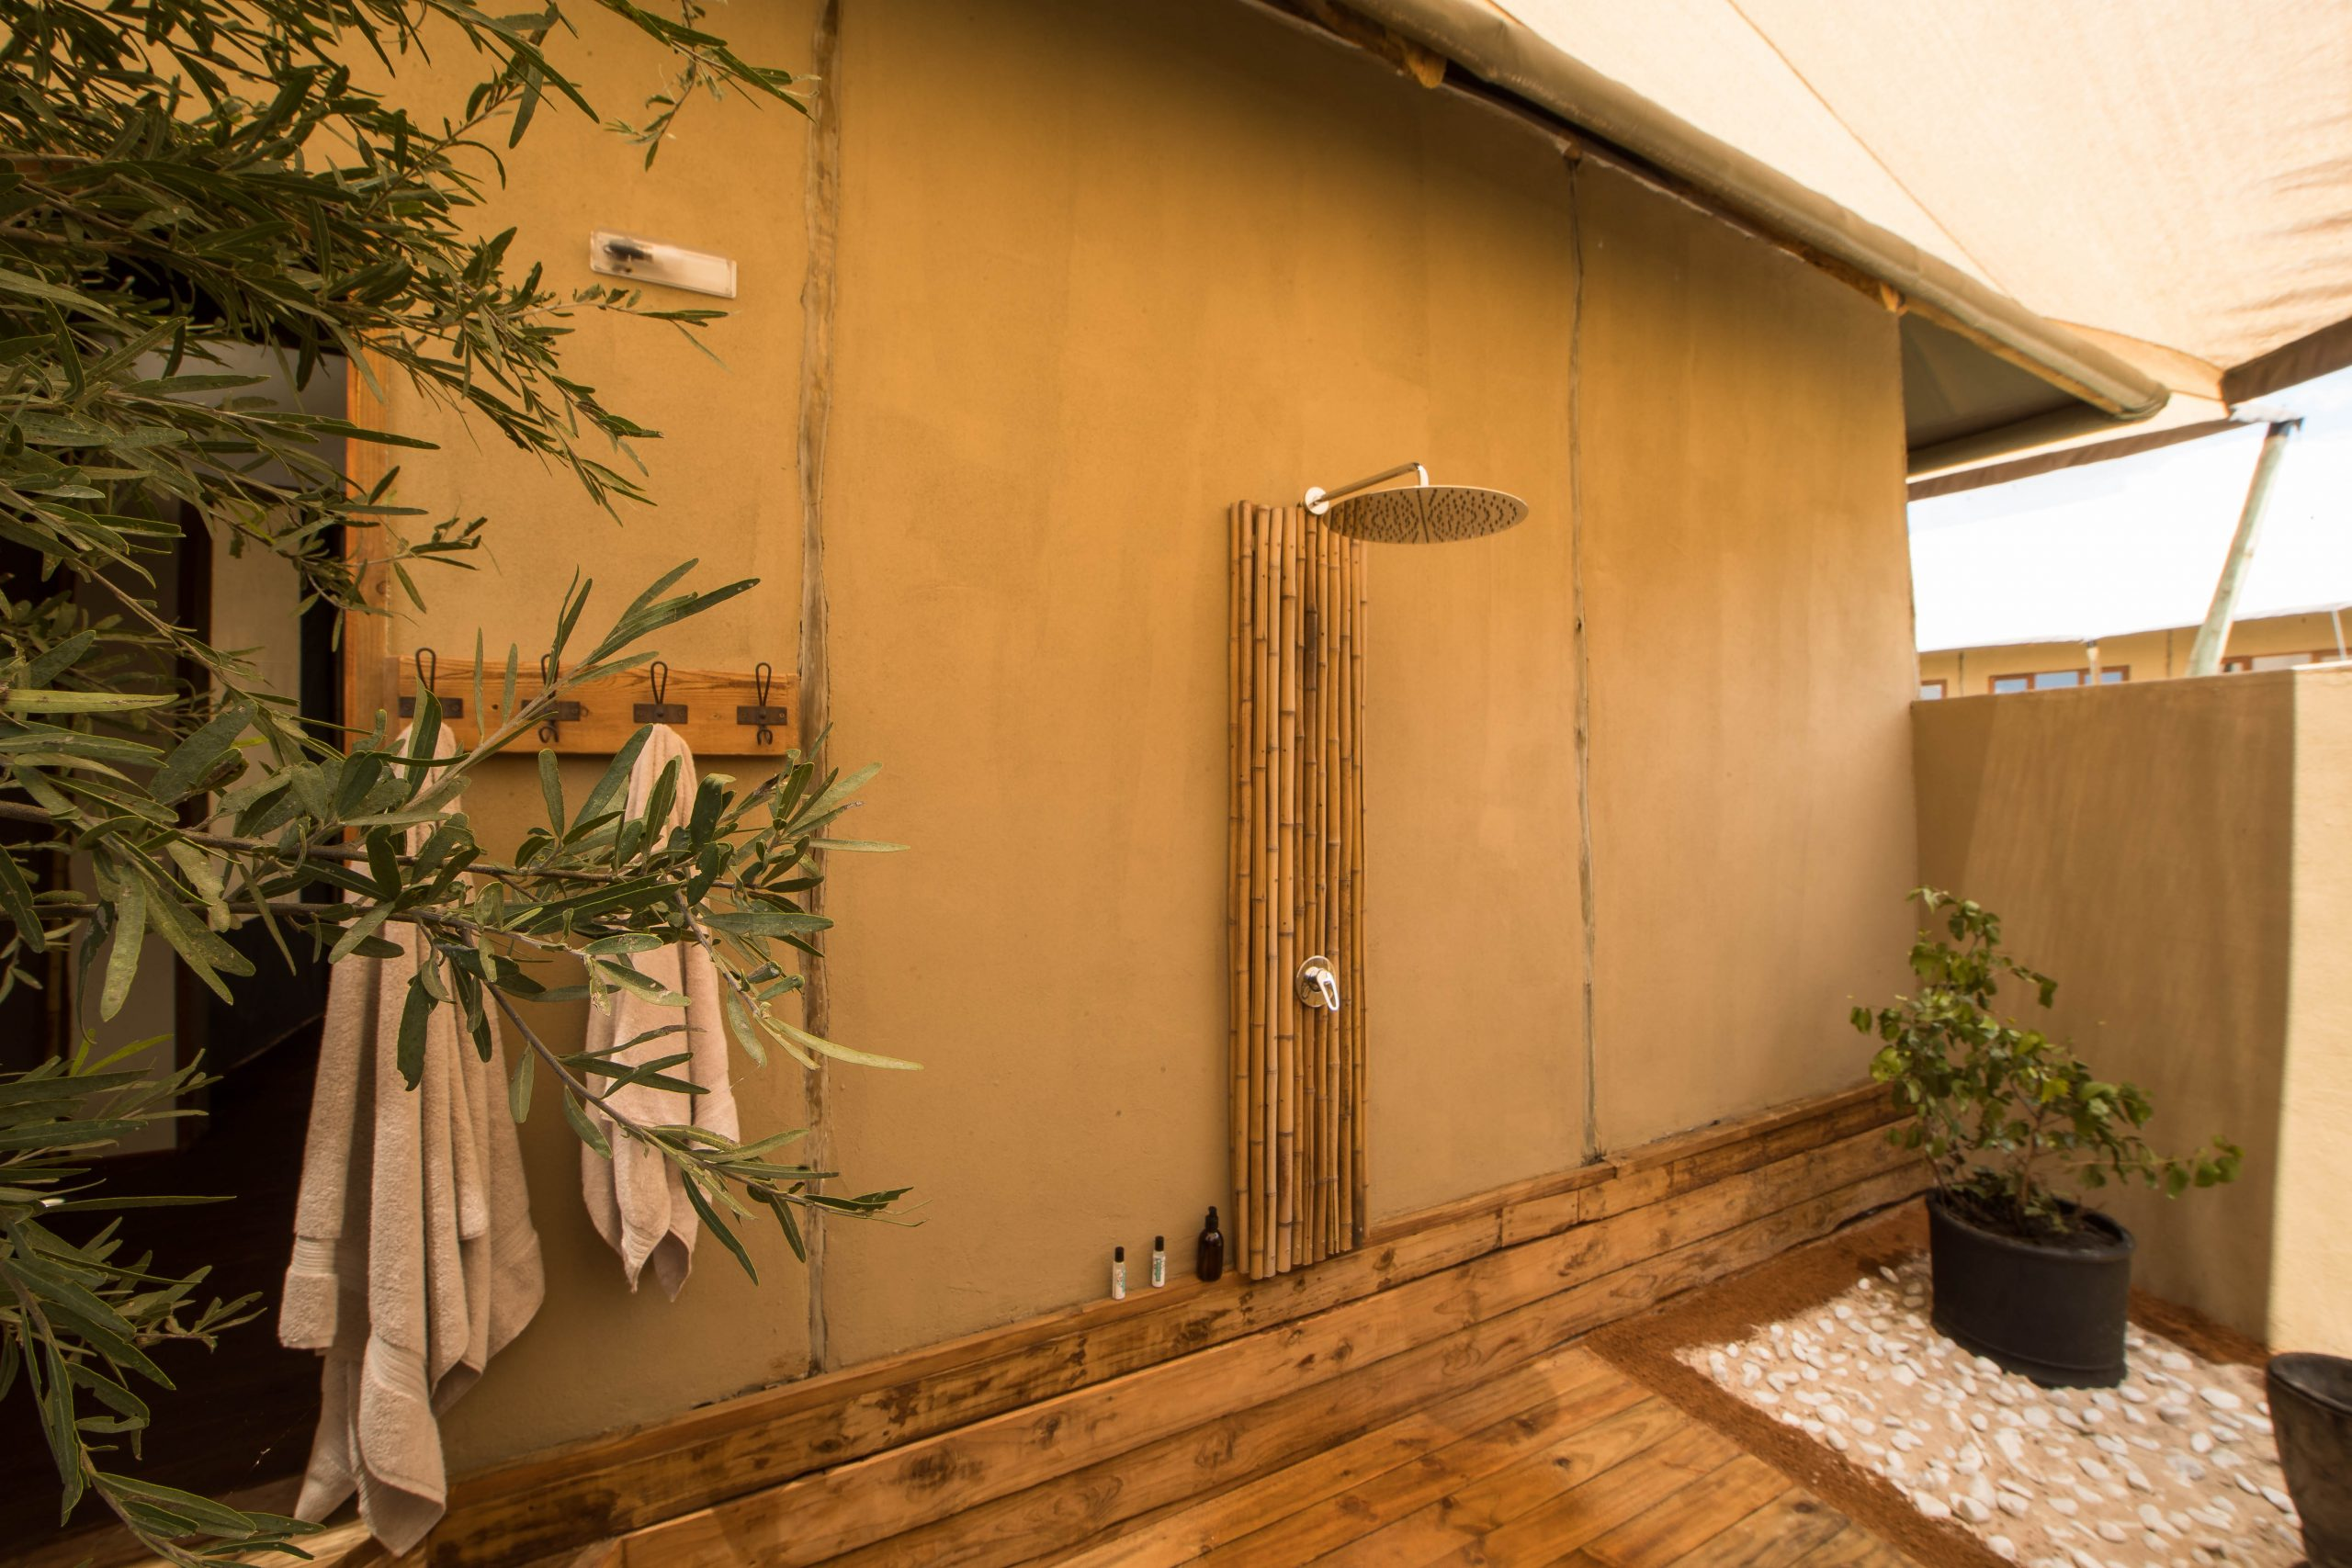 Private rain showers reconnect with nature